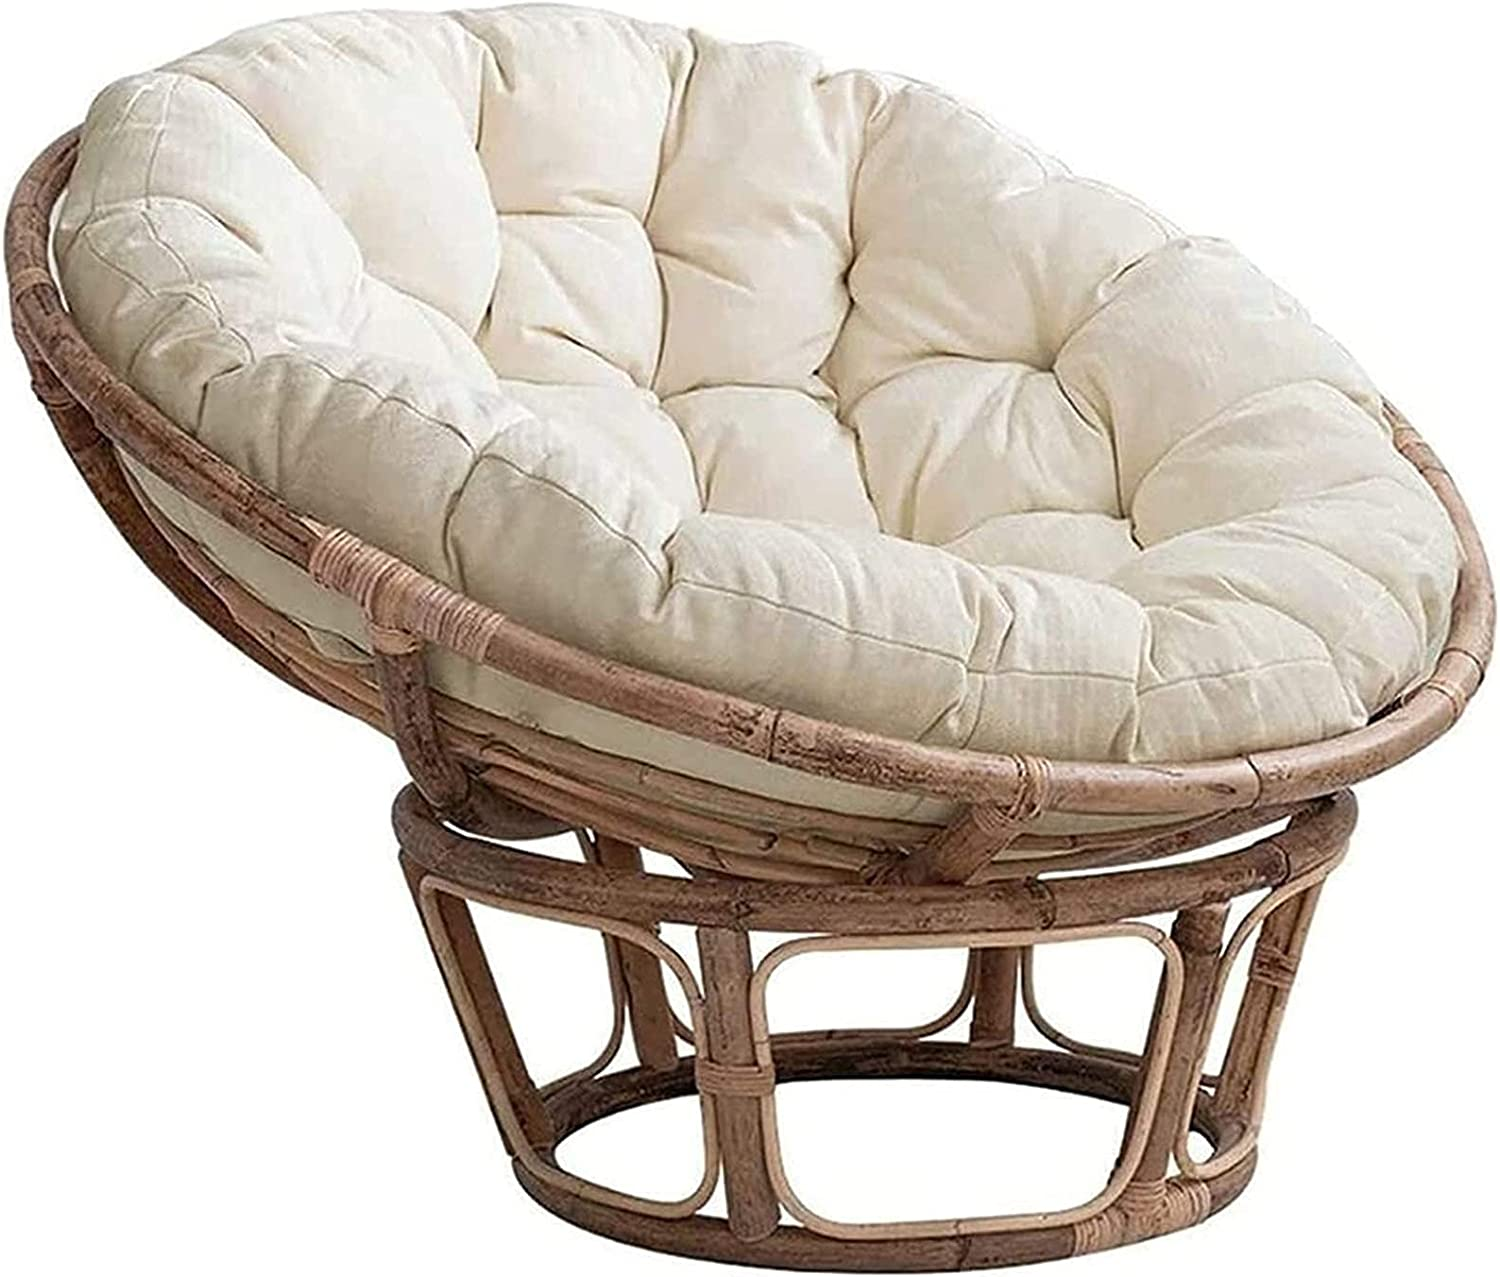 Outdoor Swing Hanging Egg Seat for Round Indoor Selling and selling Cushion Arlington Mall